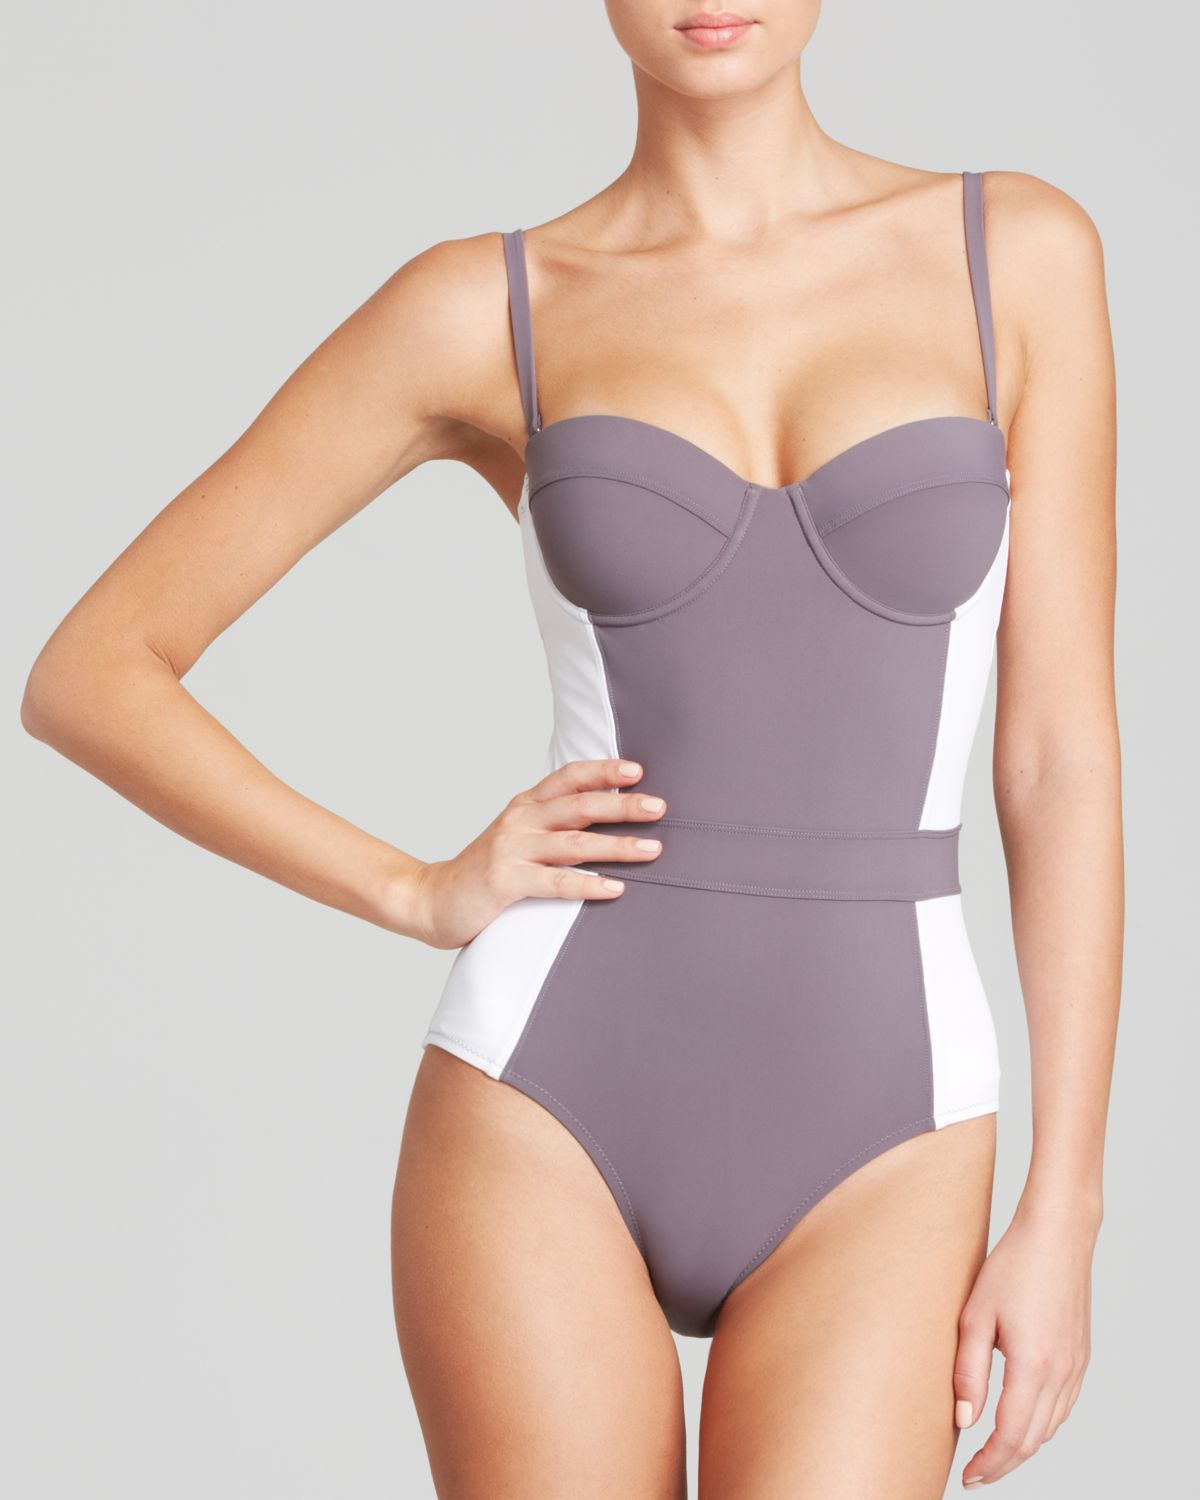 92dea585d7036 Gallery. Previously sold at  Bloomingdale s · Women s Strapless Bikinis  Women s Print Bikinis Women s White One Piece Swimsuits ...